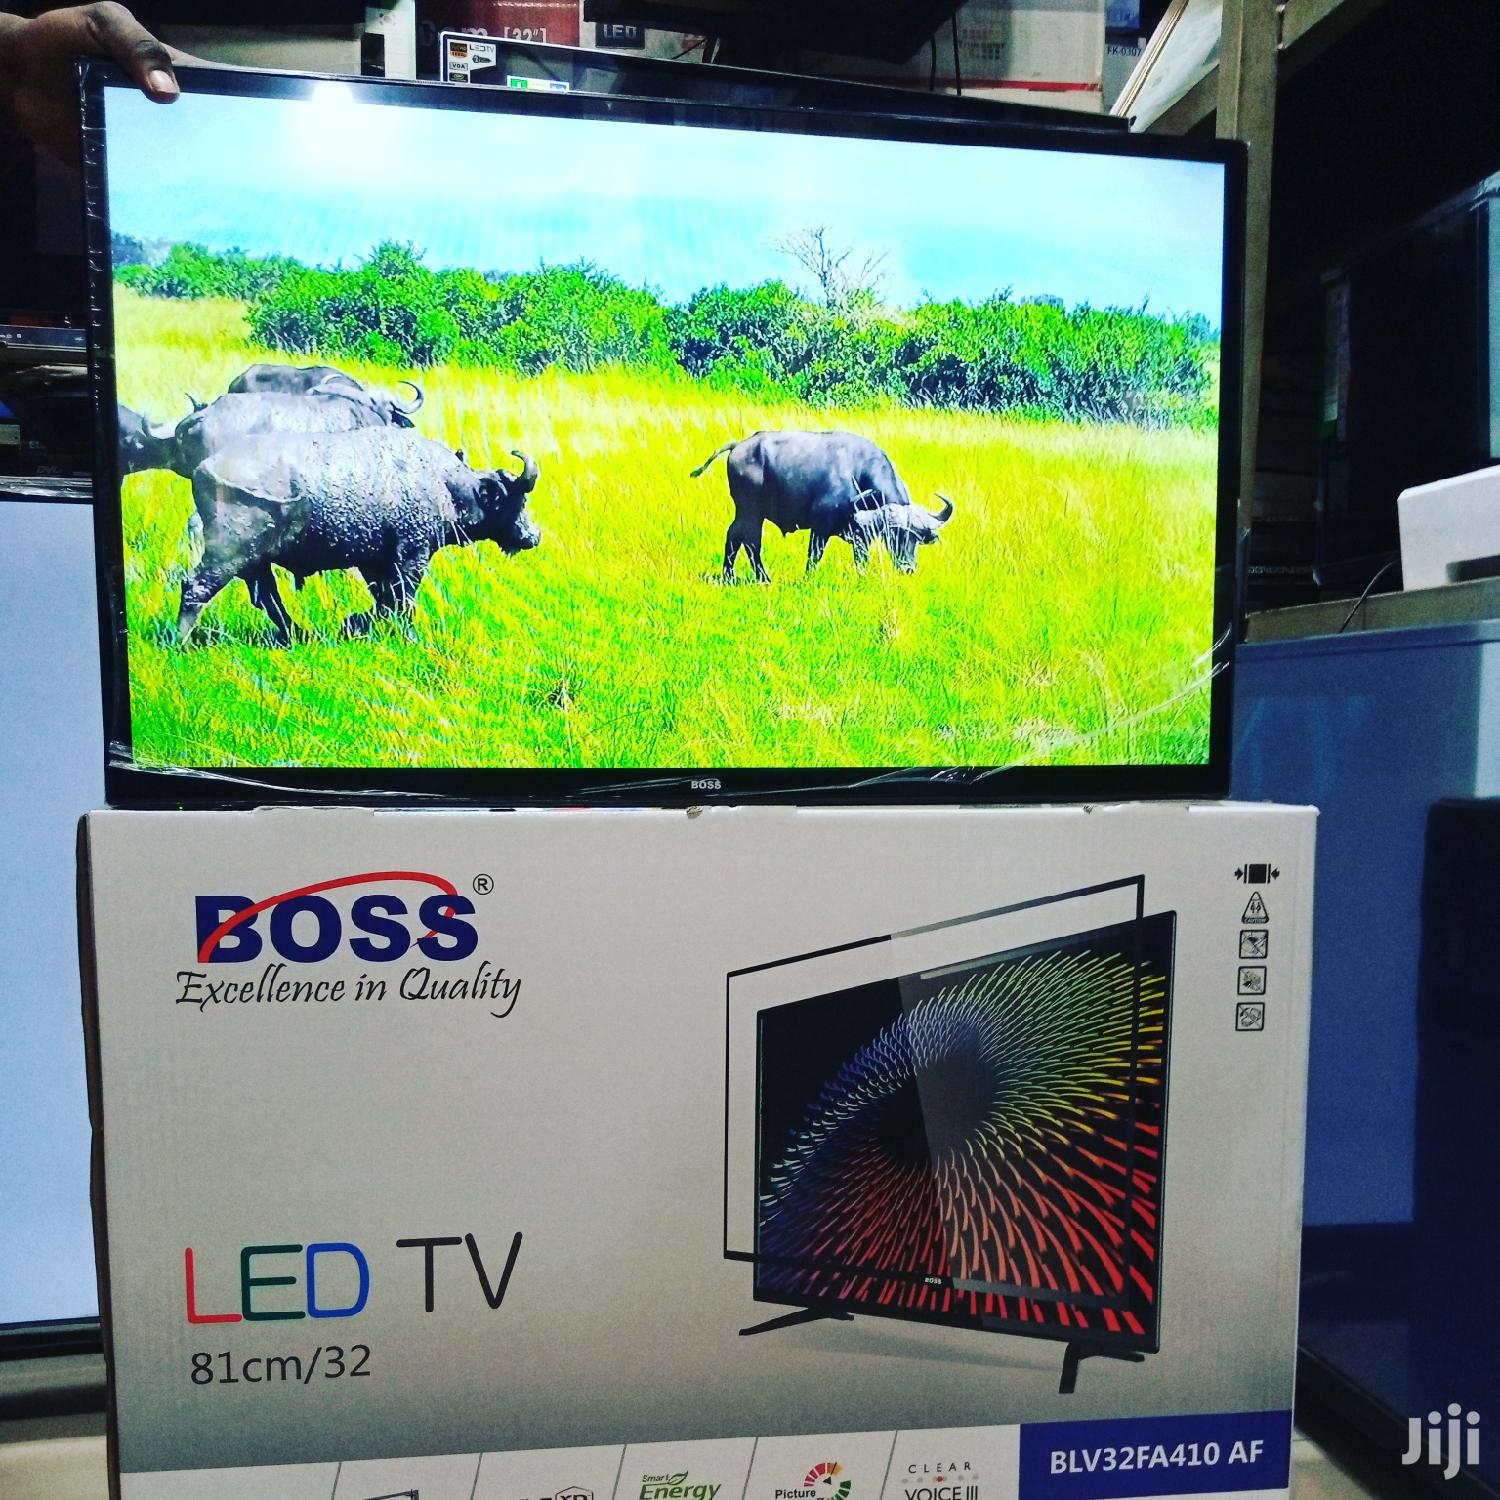 Boss LED TV Inch 32